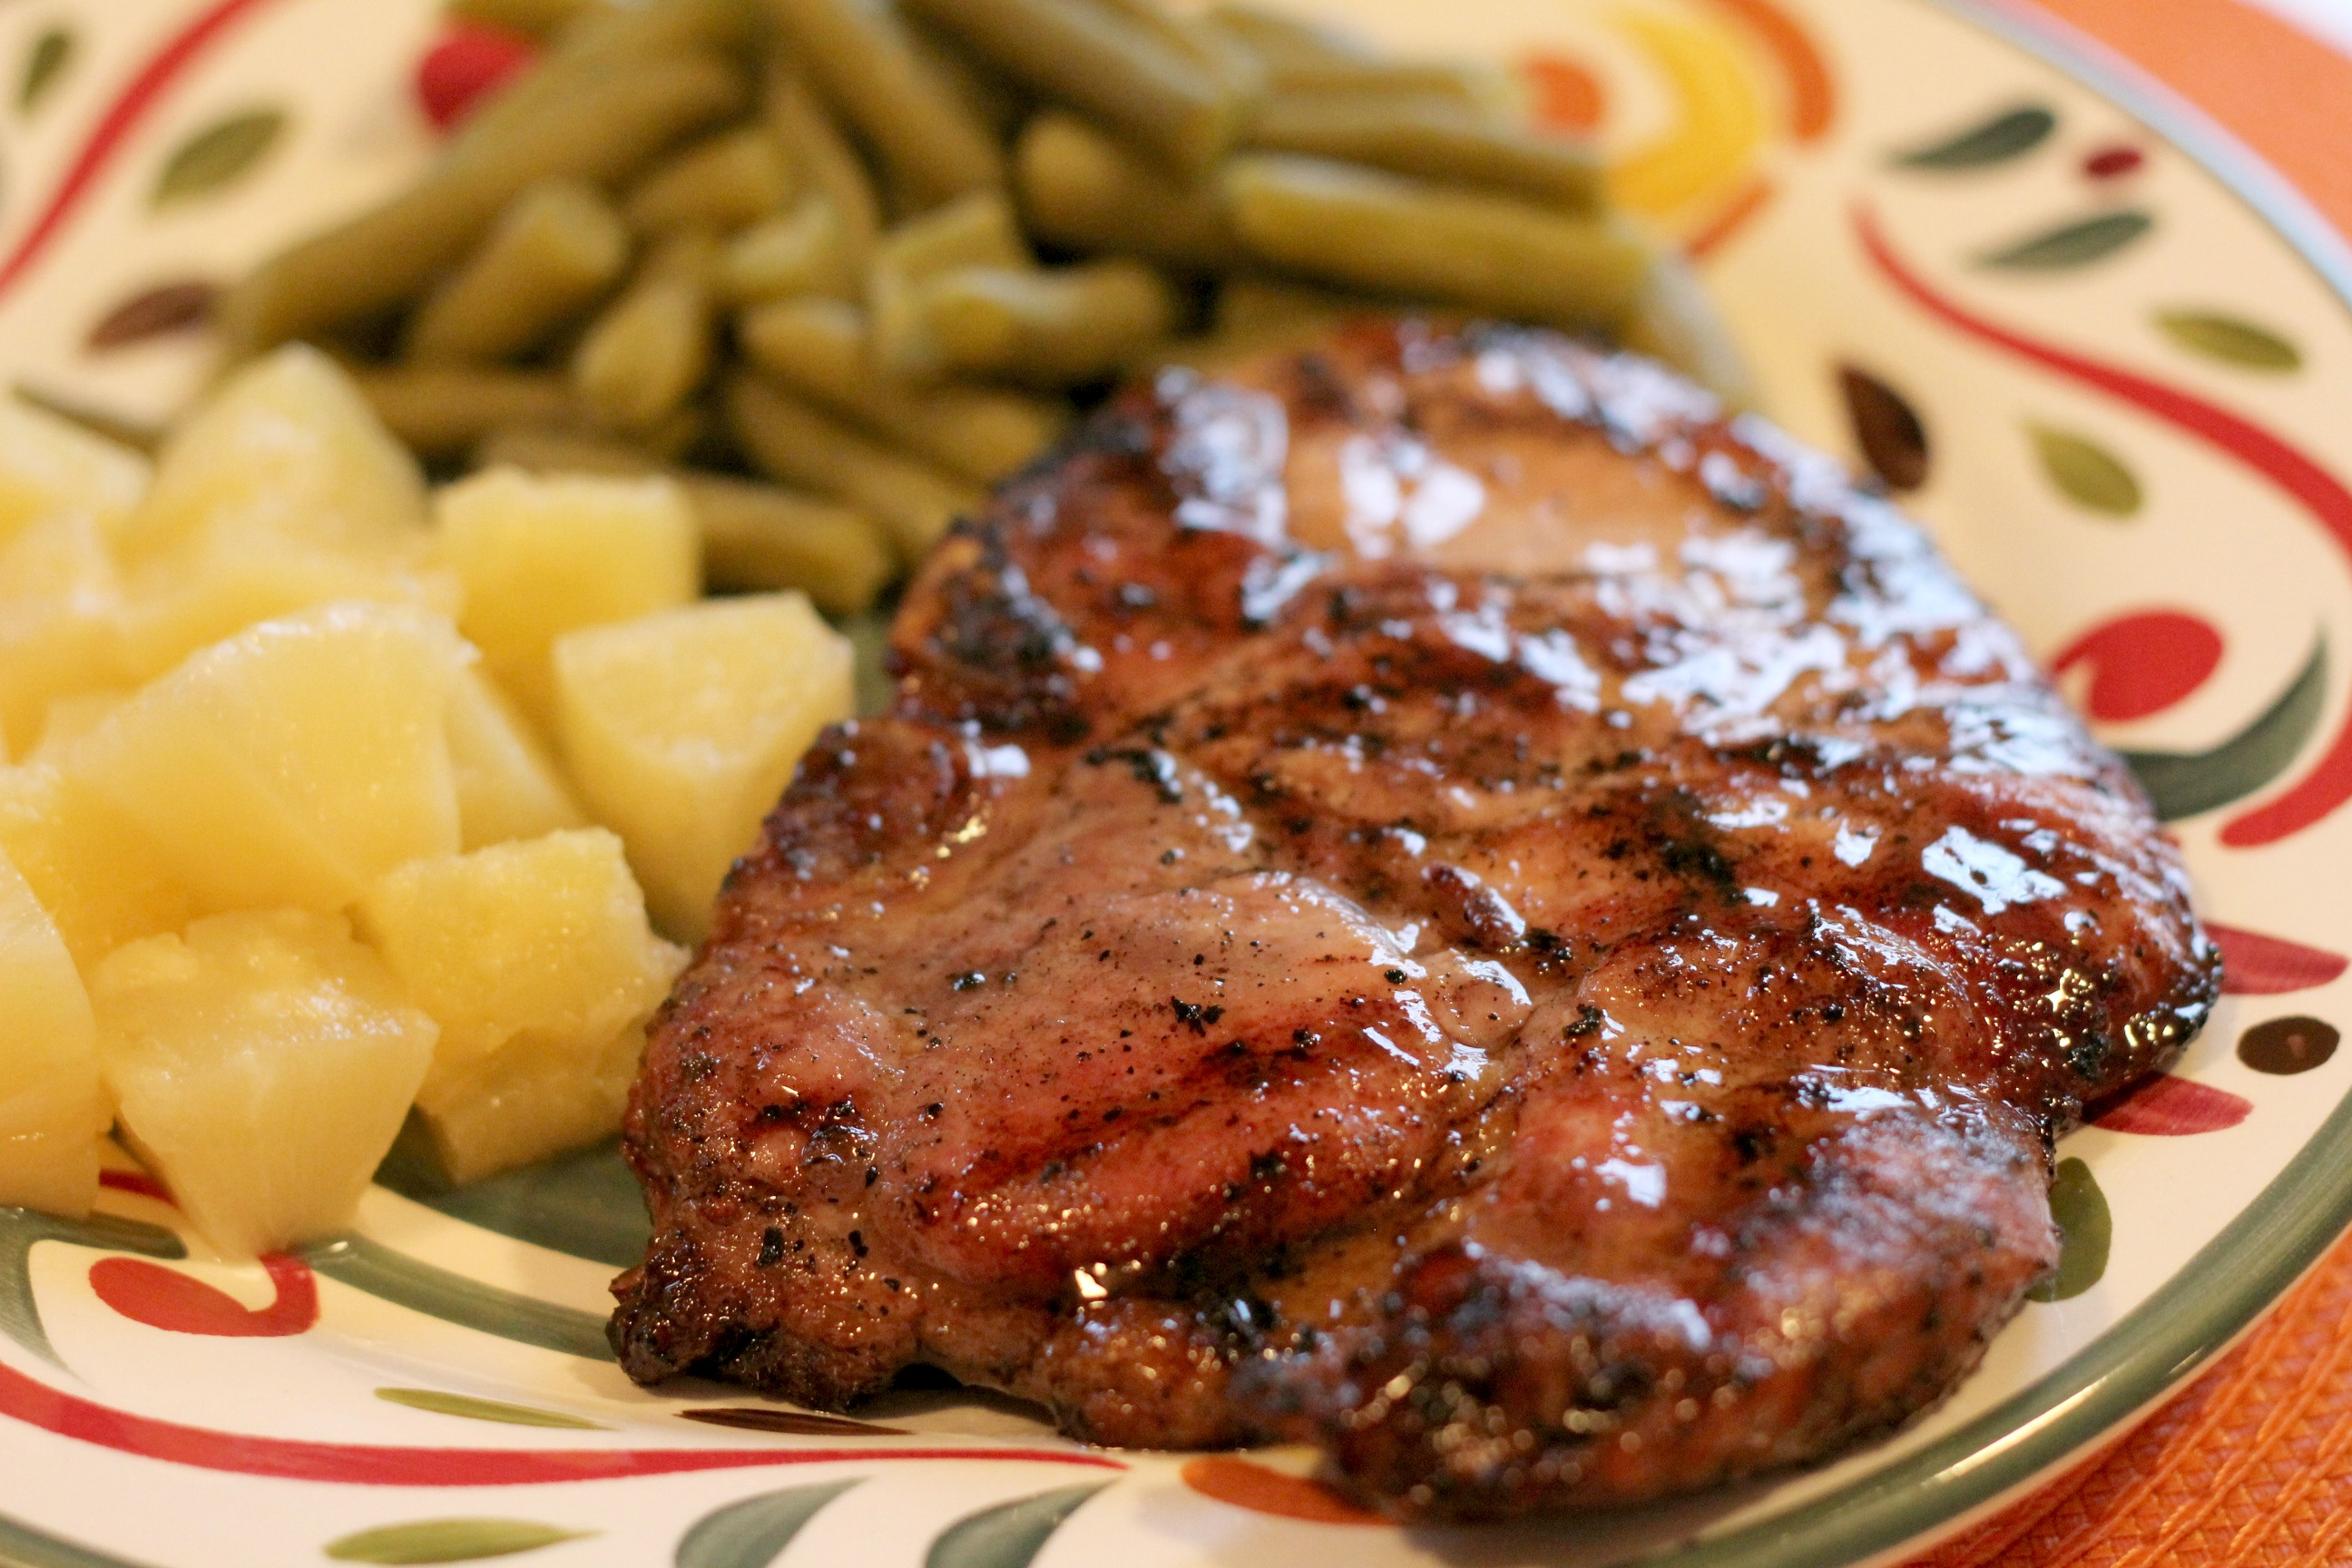 ... pork pork tenderloin recipe grilled pork chop with grilled pork chops